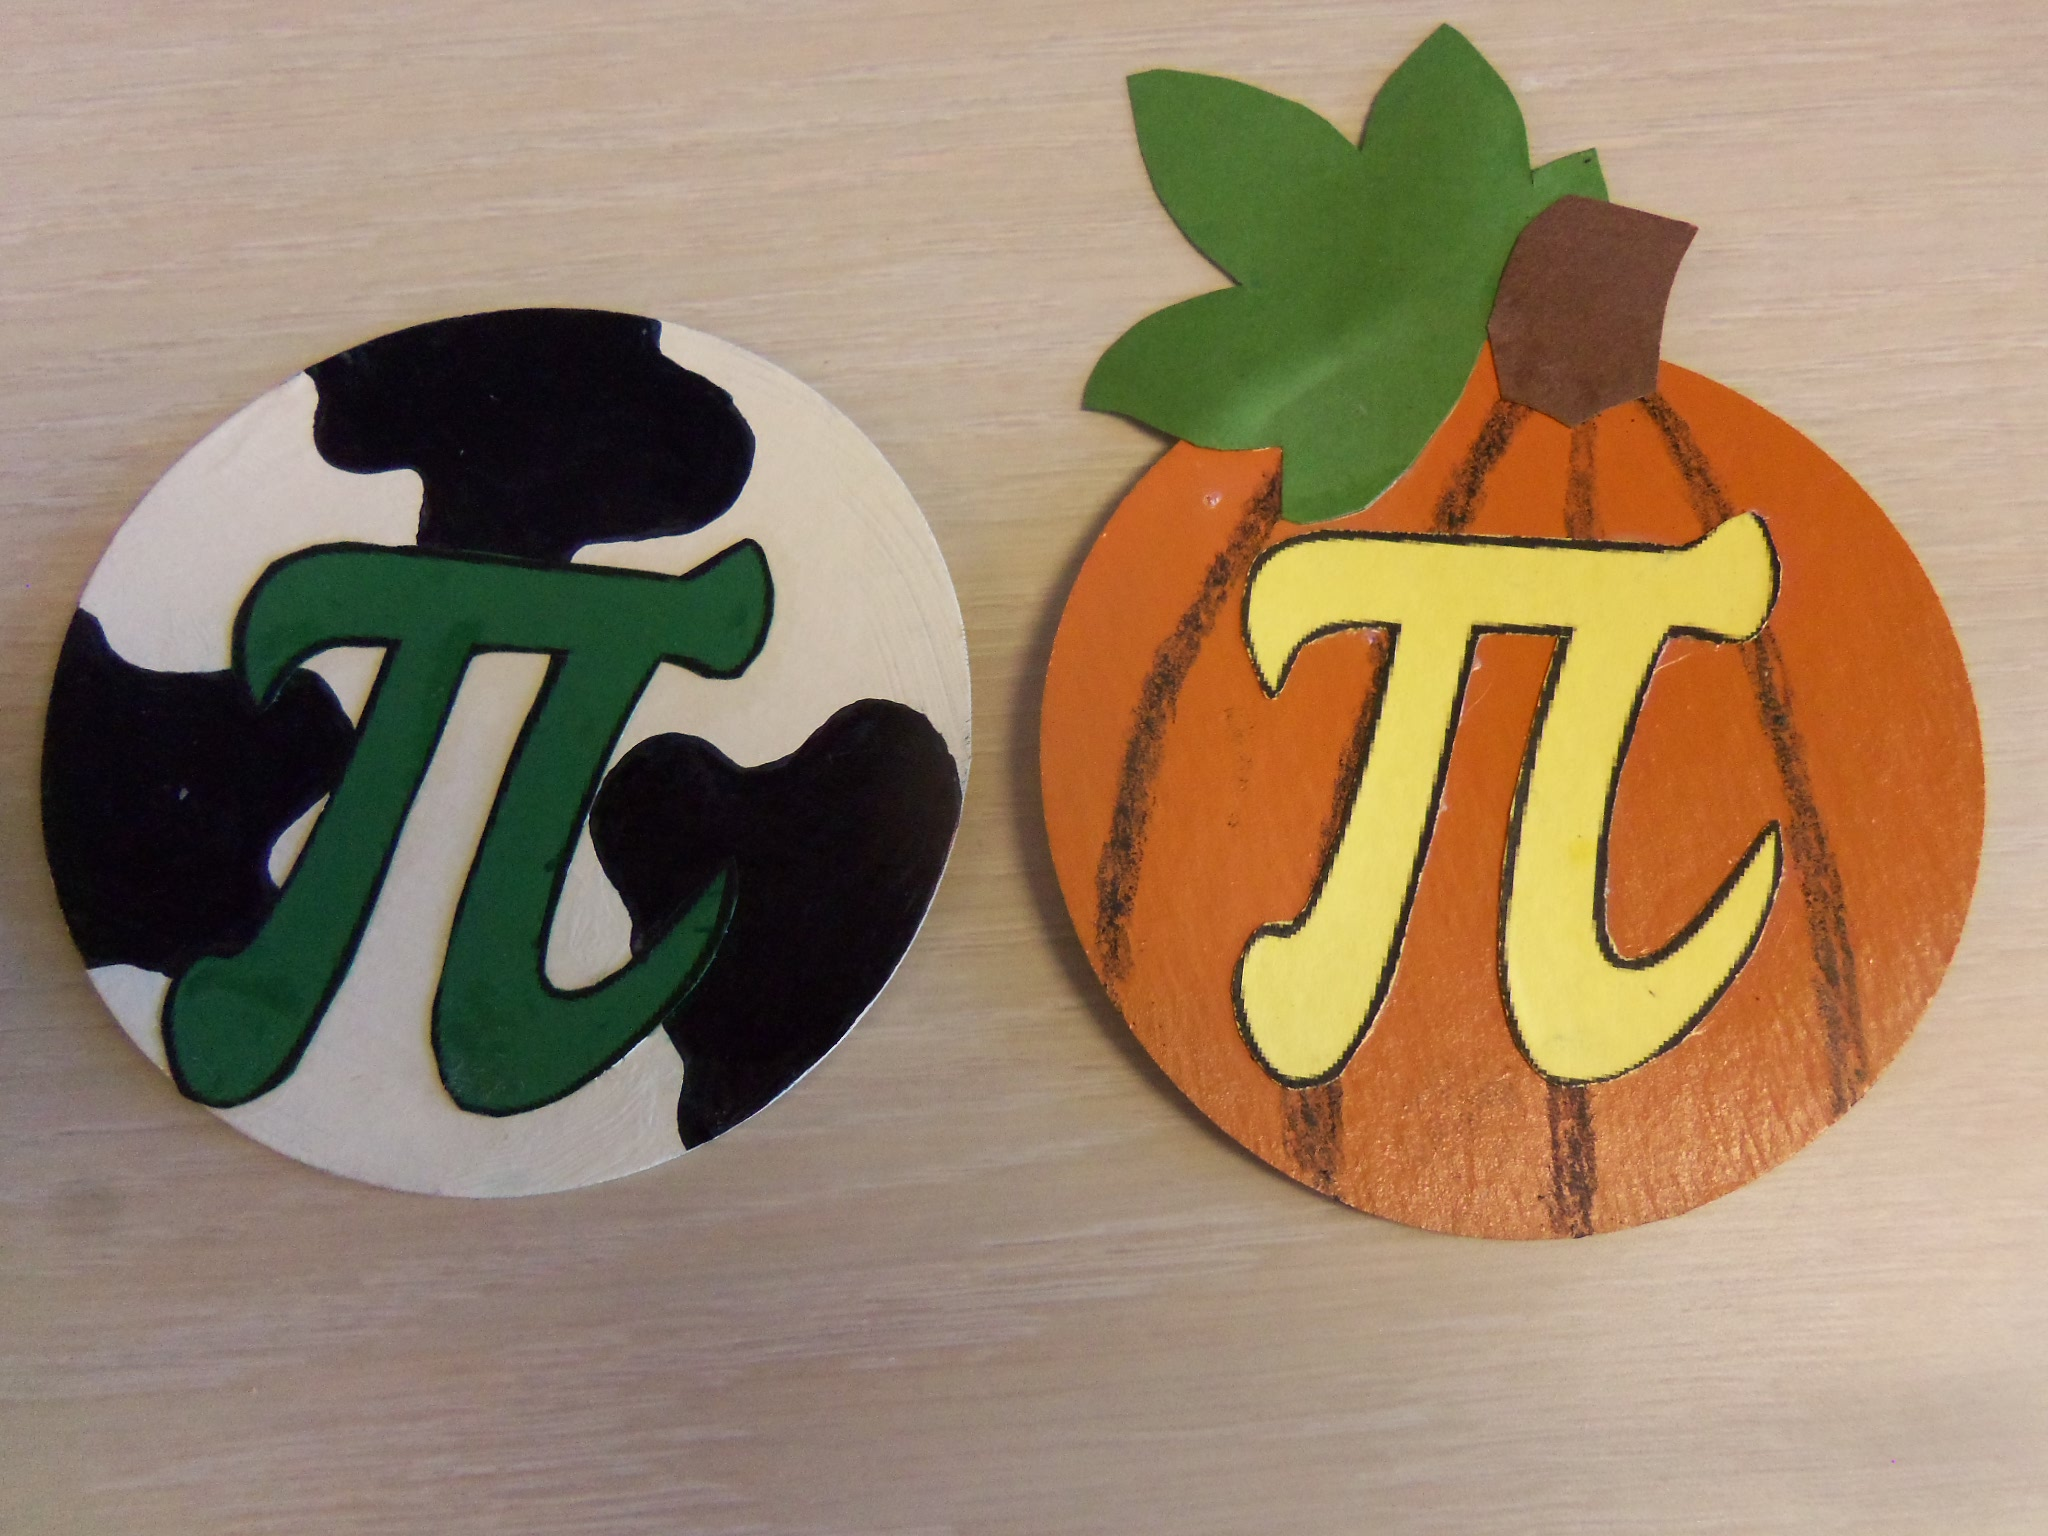 Round Up Some Fun on Pi Day